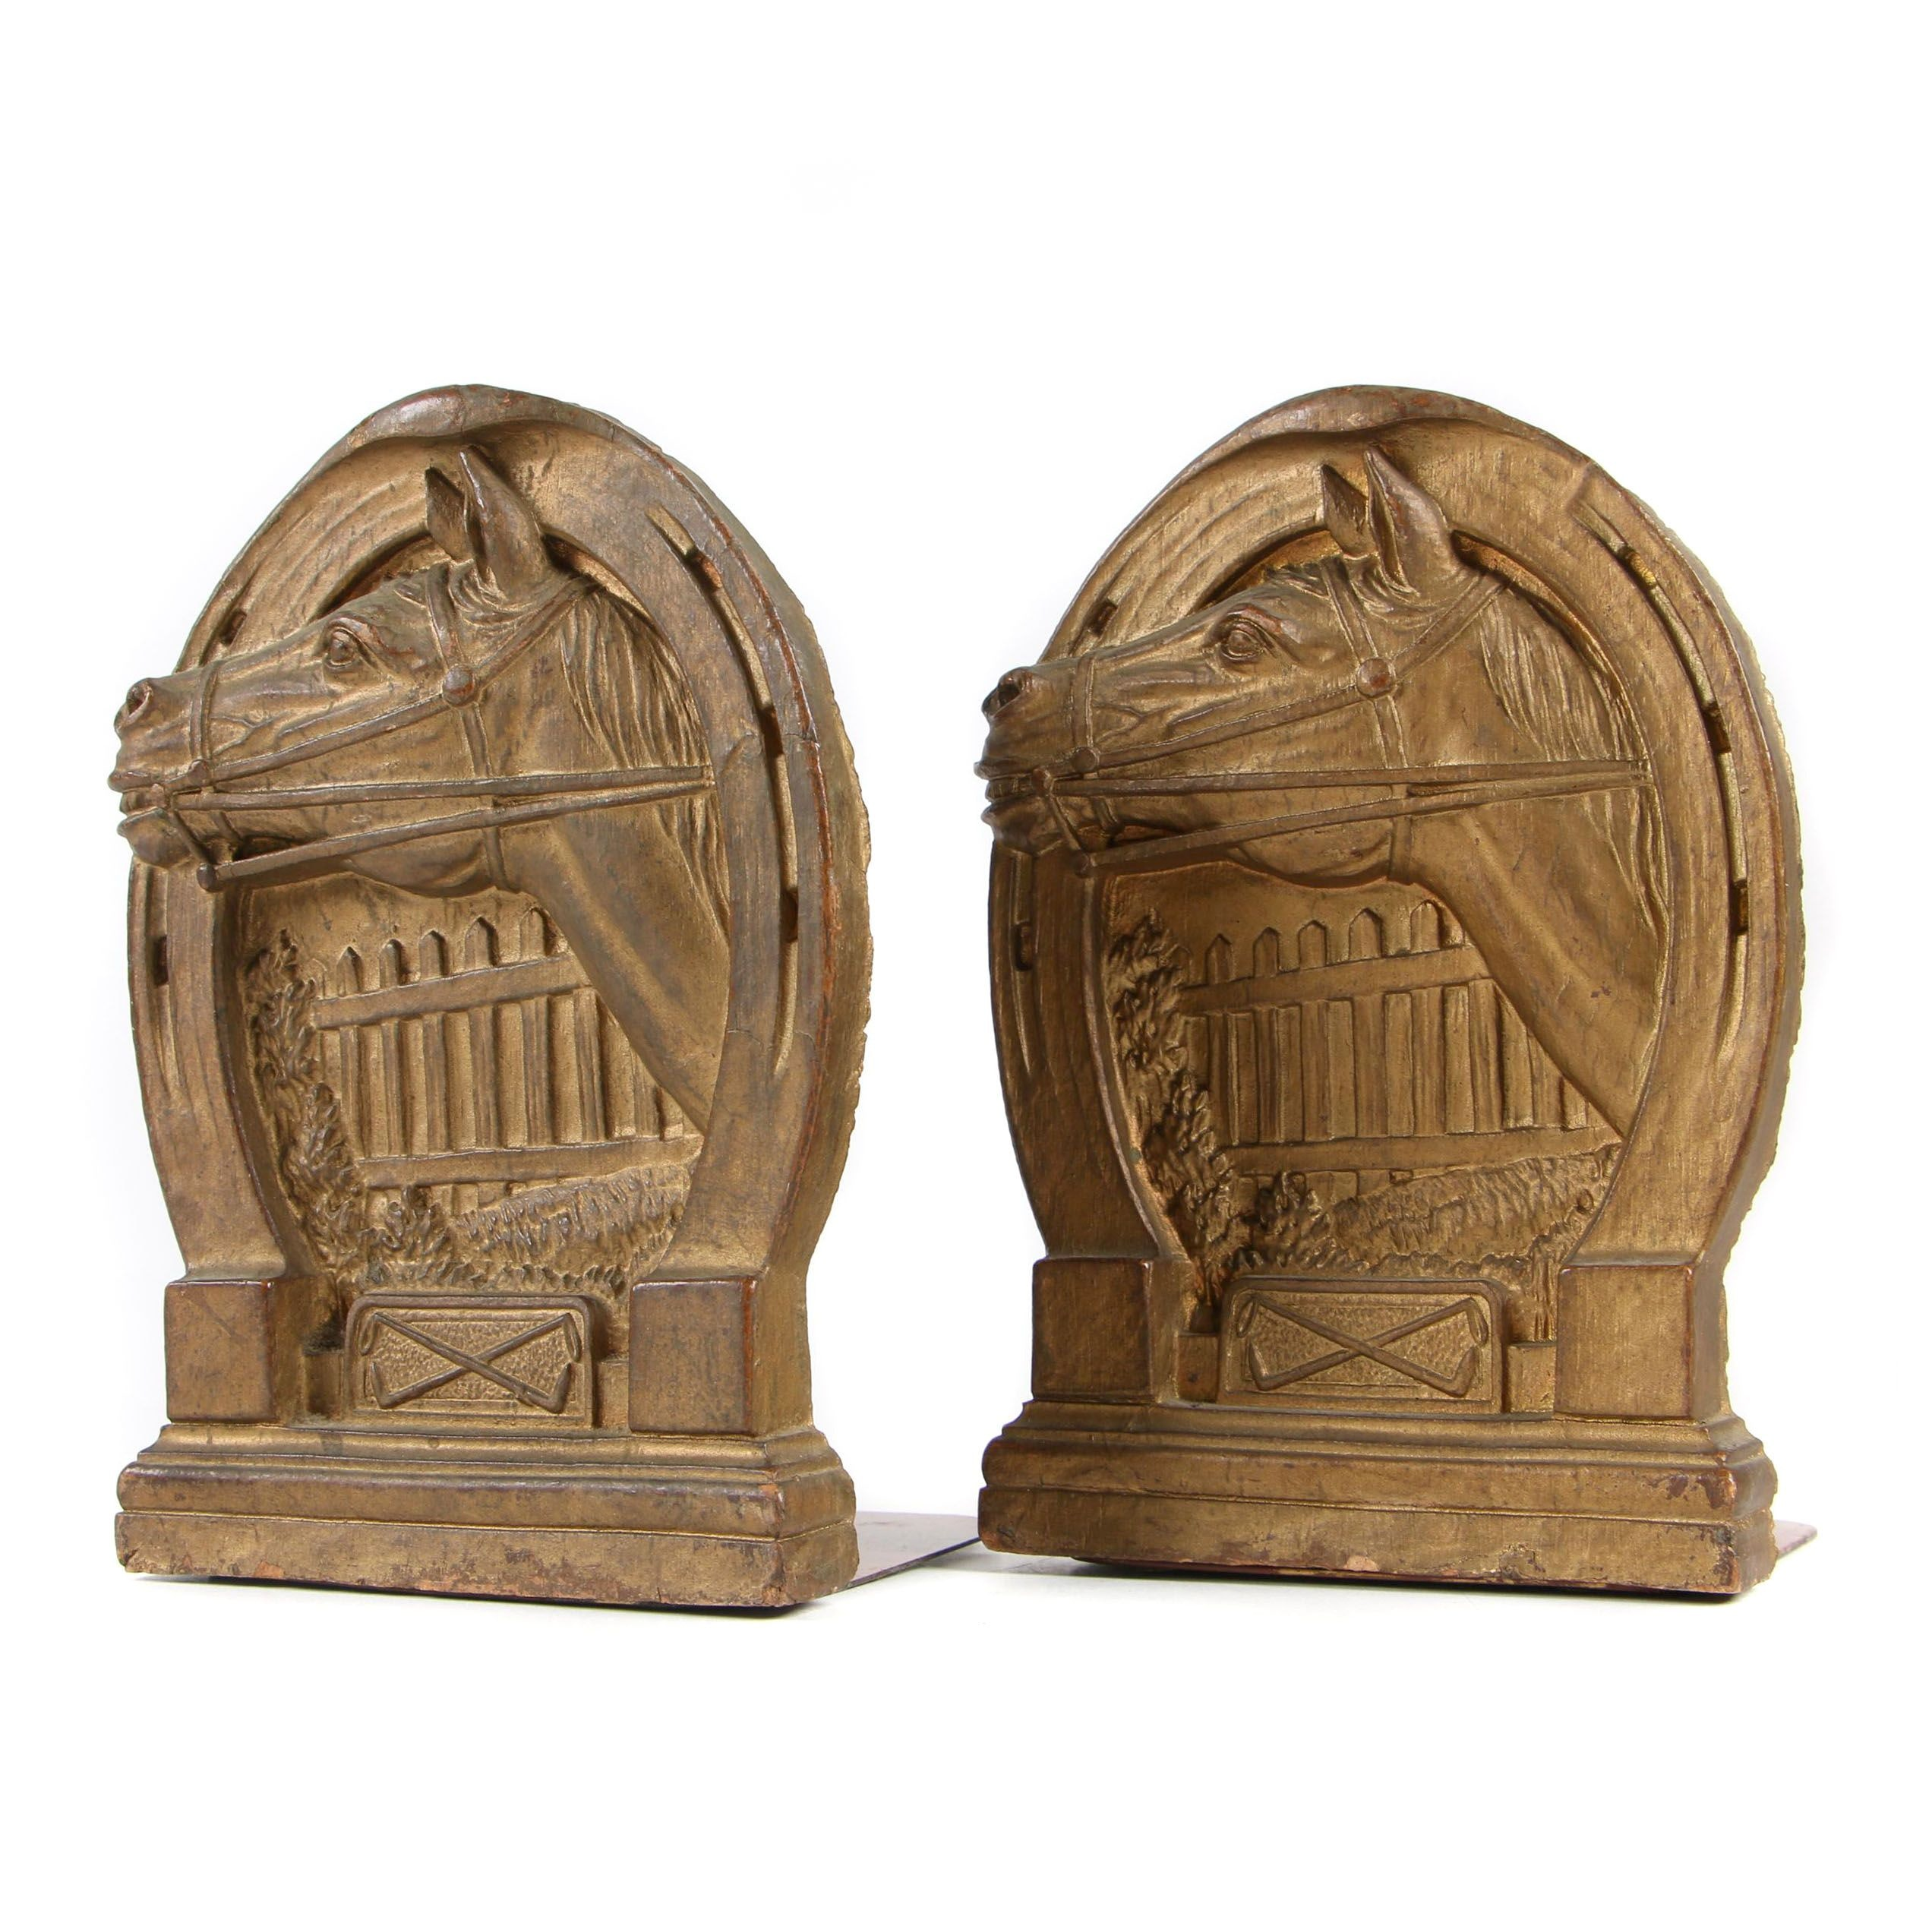 Equestrian Bookends in Brass Finish, Late 20th Century